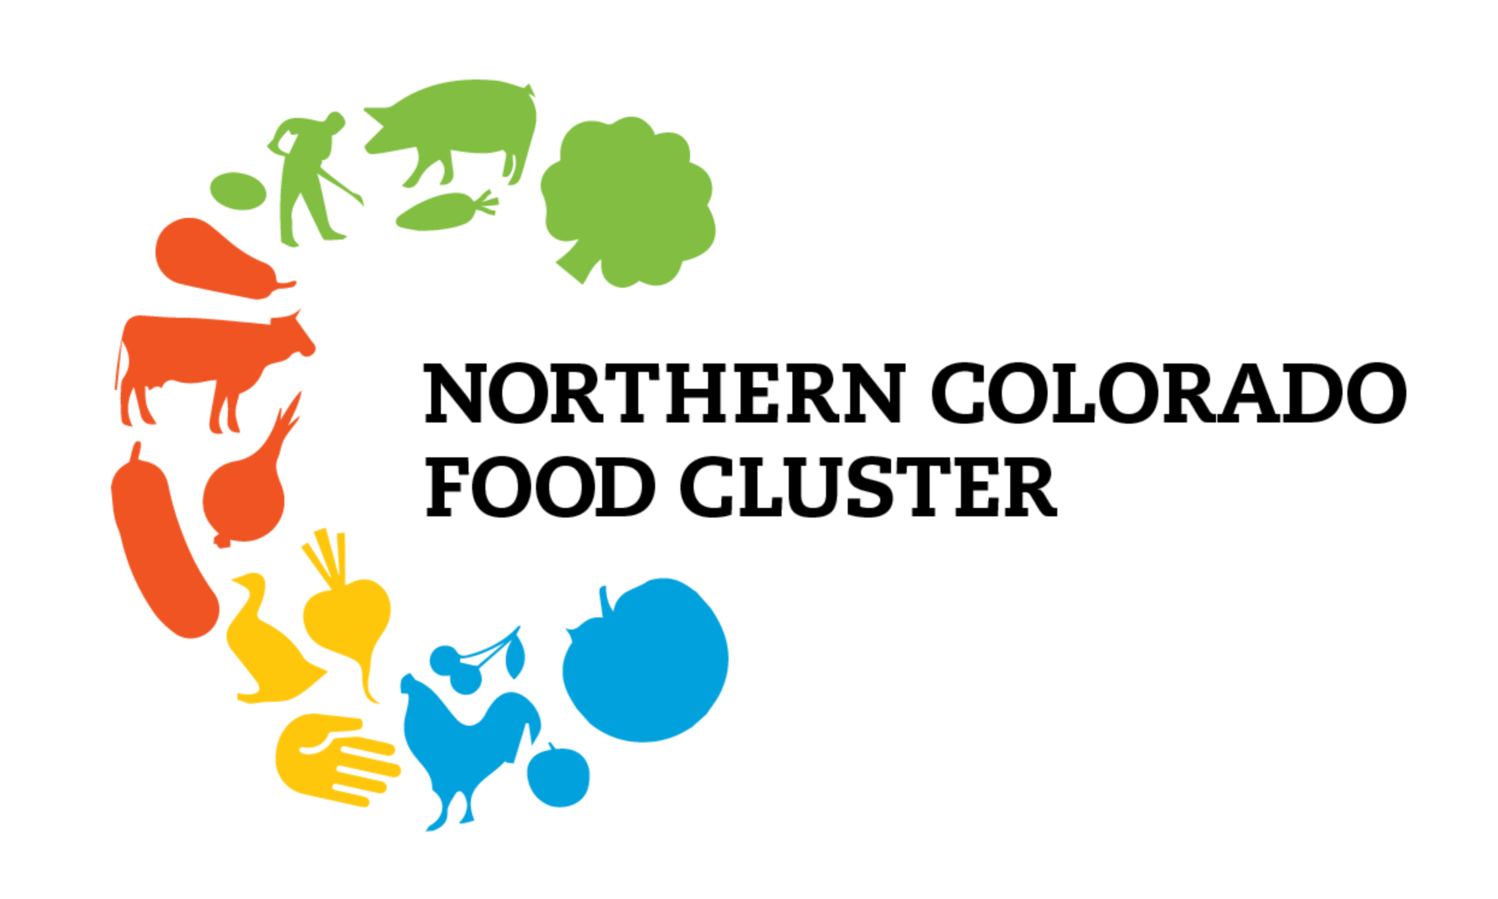 Northern Colorado Food Cluster